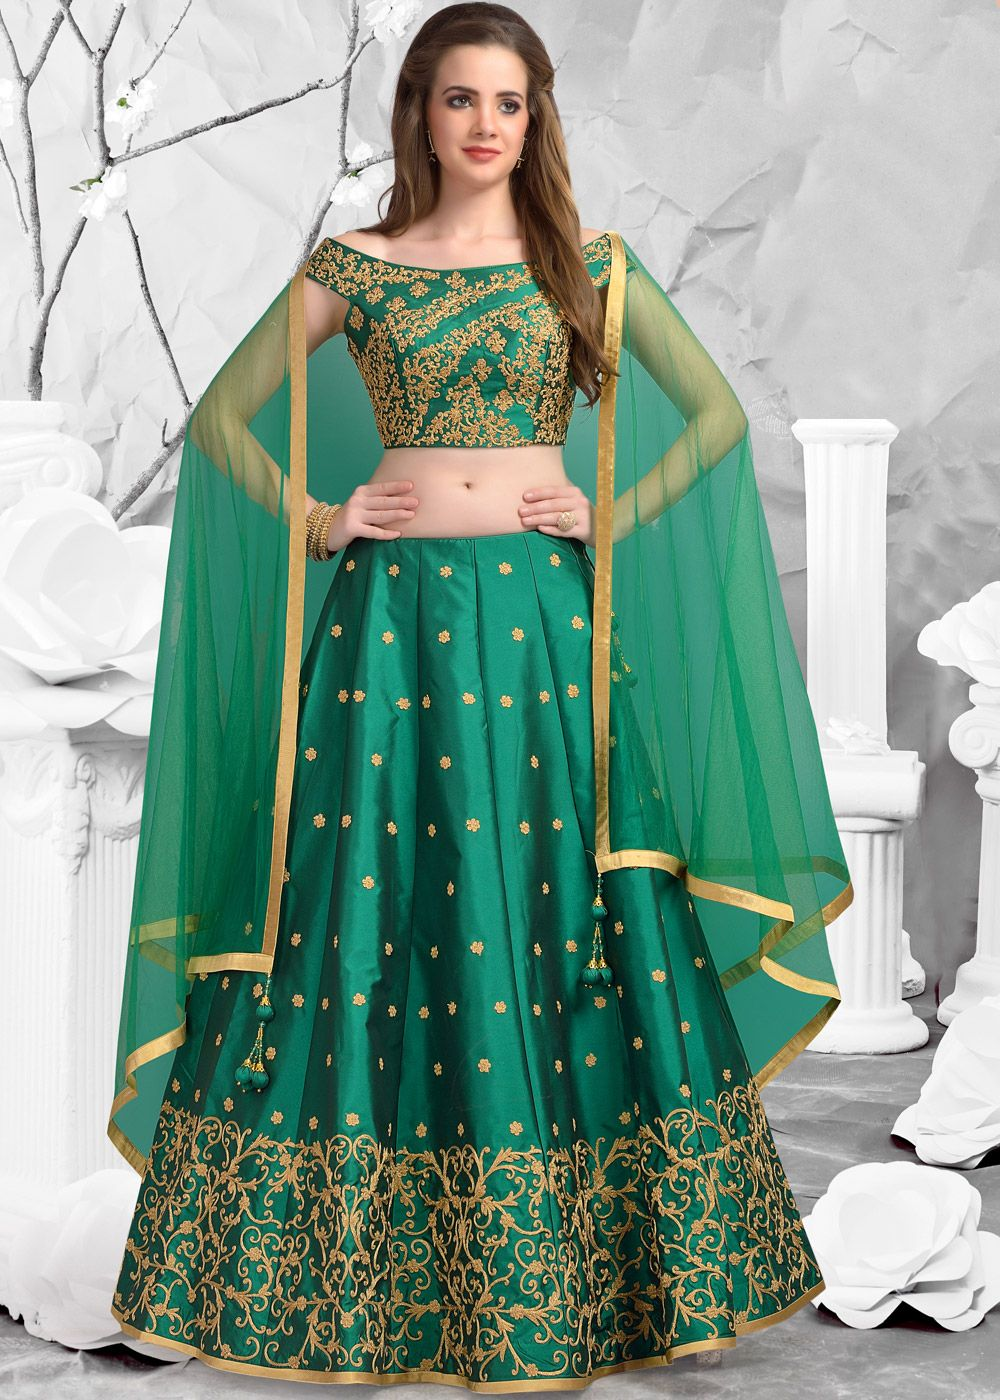 4820699c3b Wedding Royale: Buy Stylish Indian Wedding Dresses Online USA. February  2019. Wear this green dupion silk lehenga choli ...